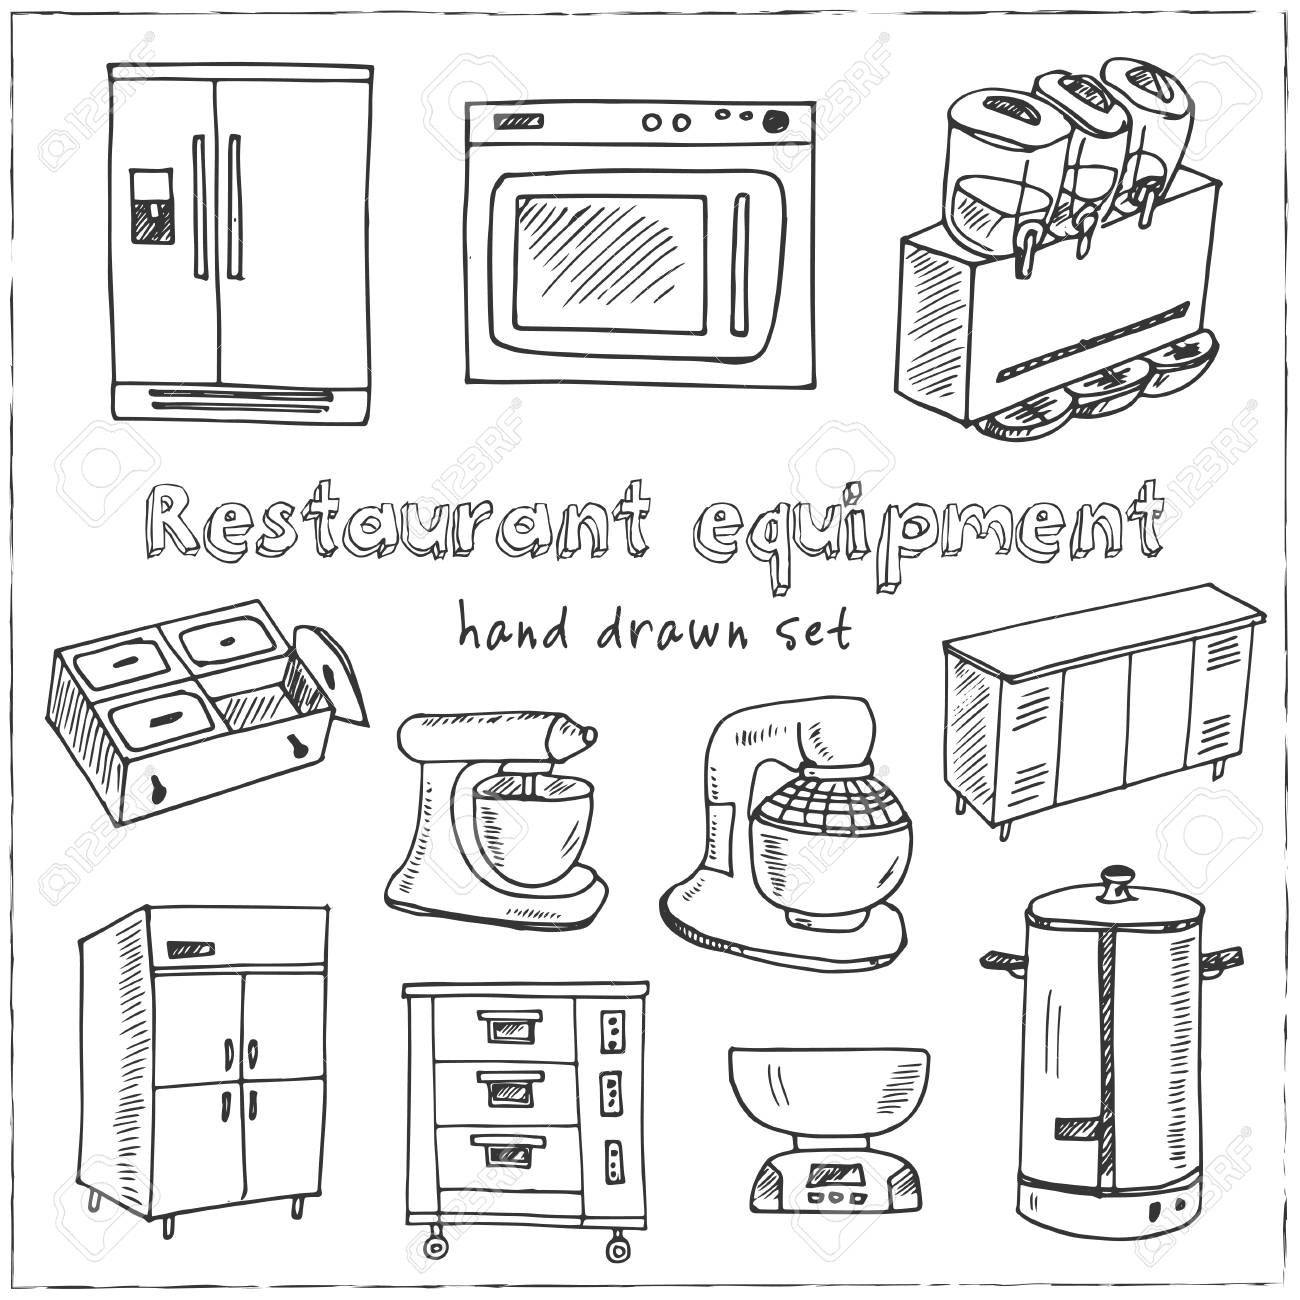 Restaurant Equipment Hand Drawn Doodle Set Sketches Vector Royalty Free Cliparts Vectors And Stock Illustration Image 102050636